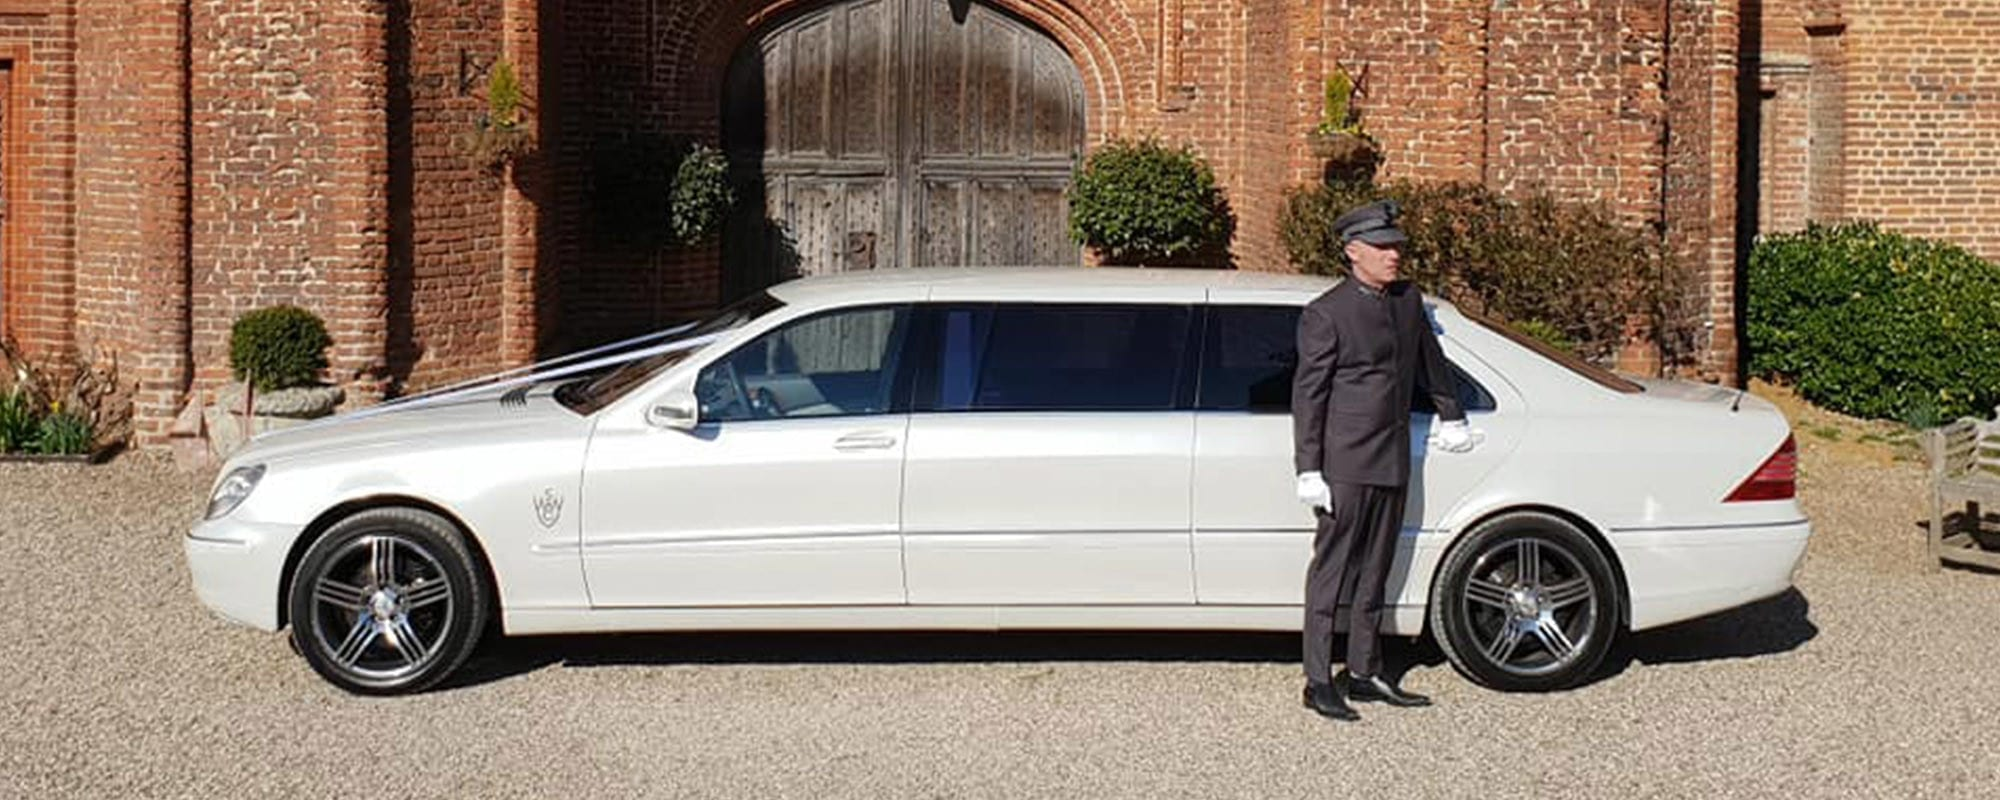 Luxury private car hire Suffolk